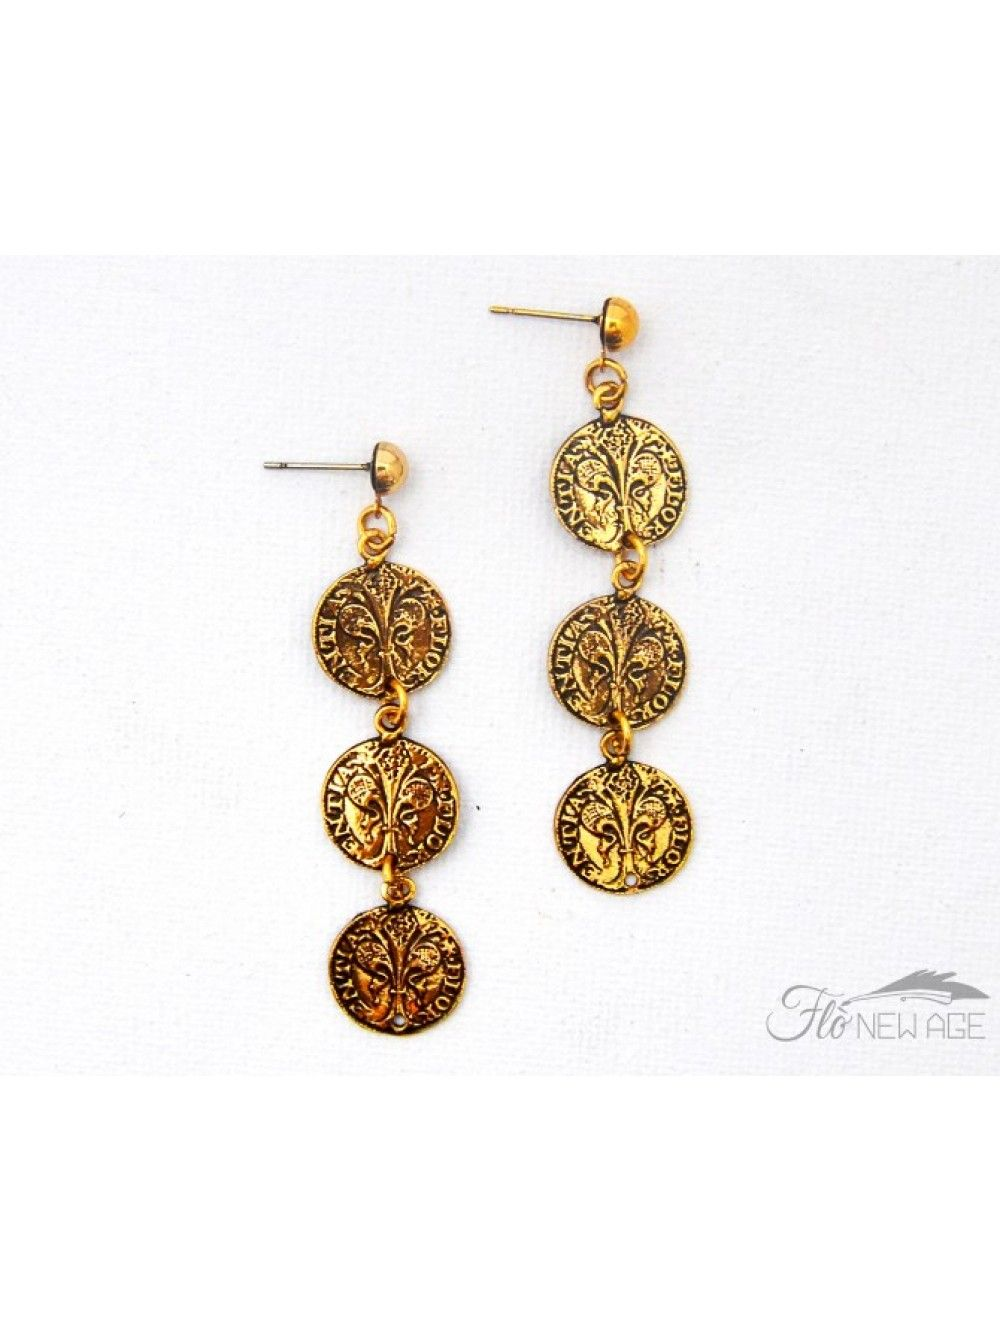 Flo New Age Gold Plated Br Earrings Made In Italy